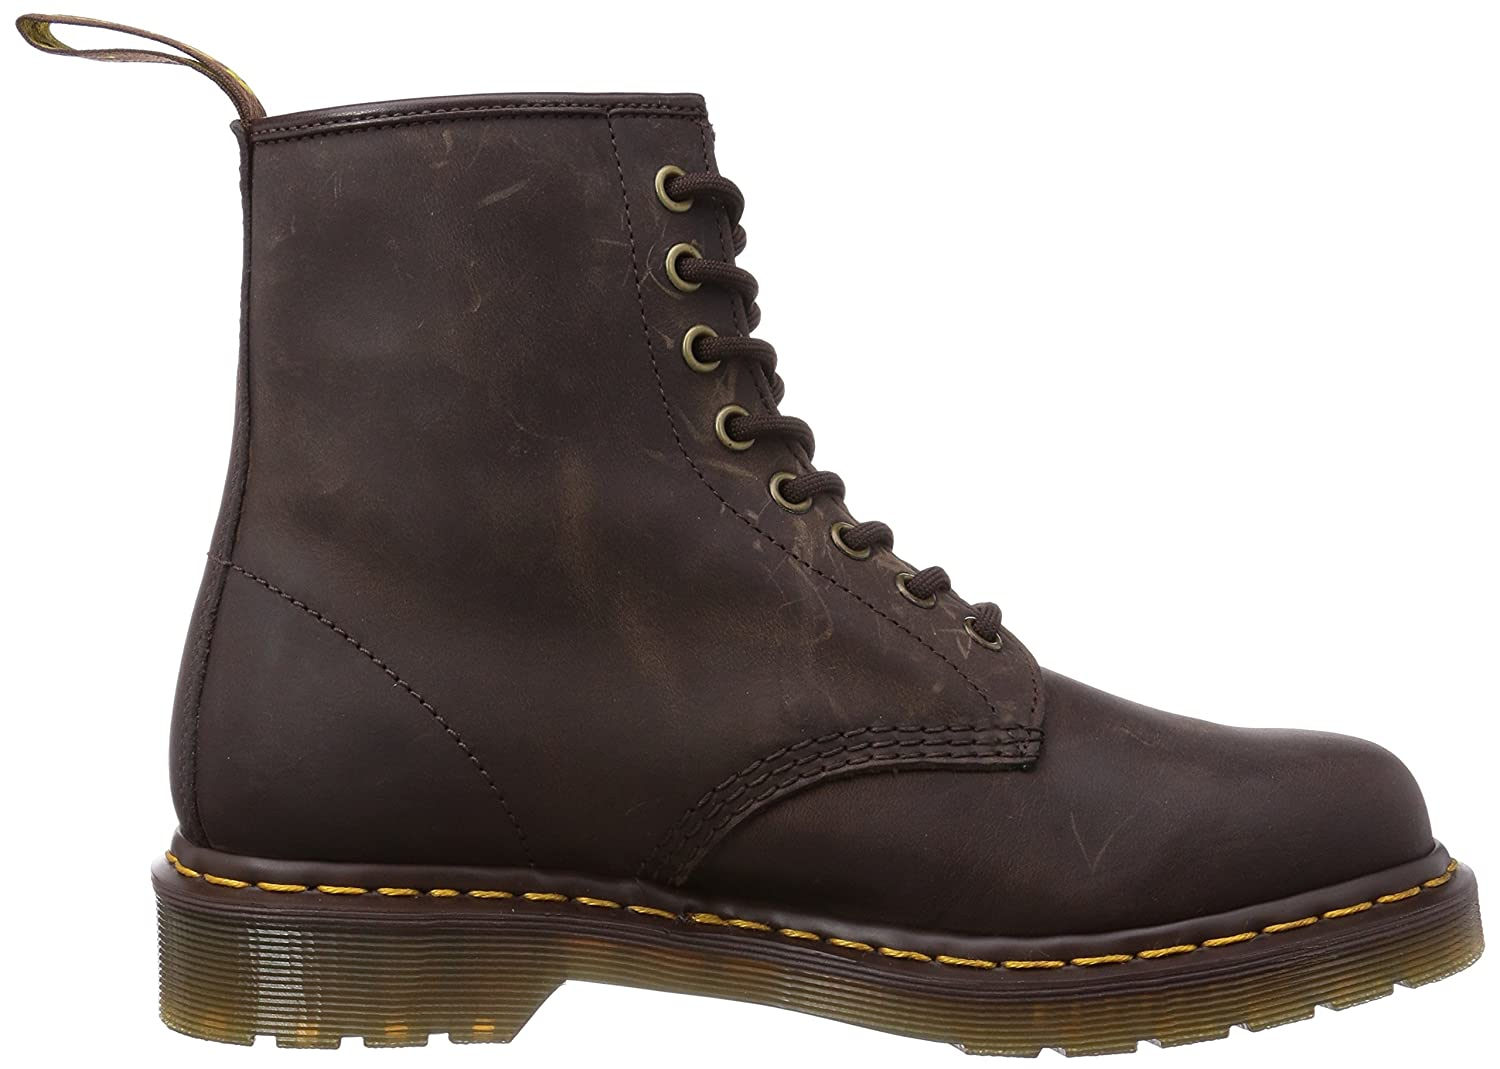 Dr. Martens Men's 1460 Combat Boot, 8.5 B(M) US Women/7.5 D(M) US Men B001N1J53S 9 M UK (10 US)|Gaucho Crazy Horse